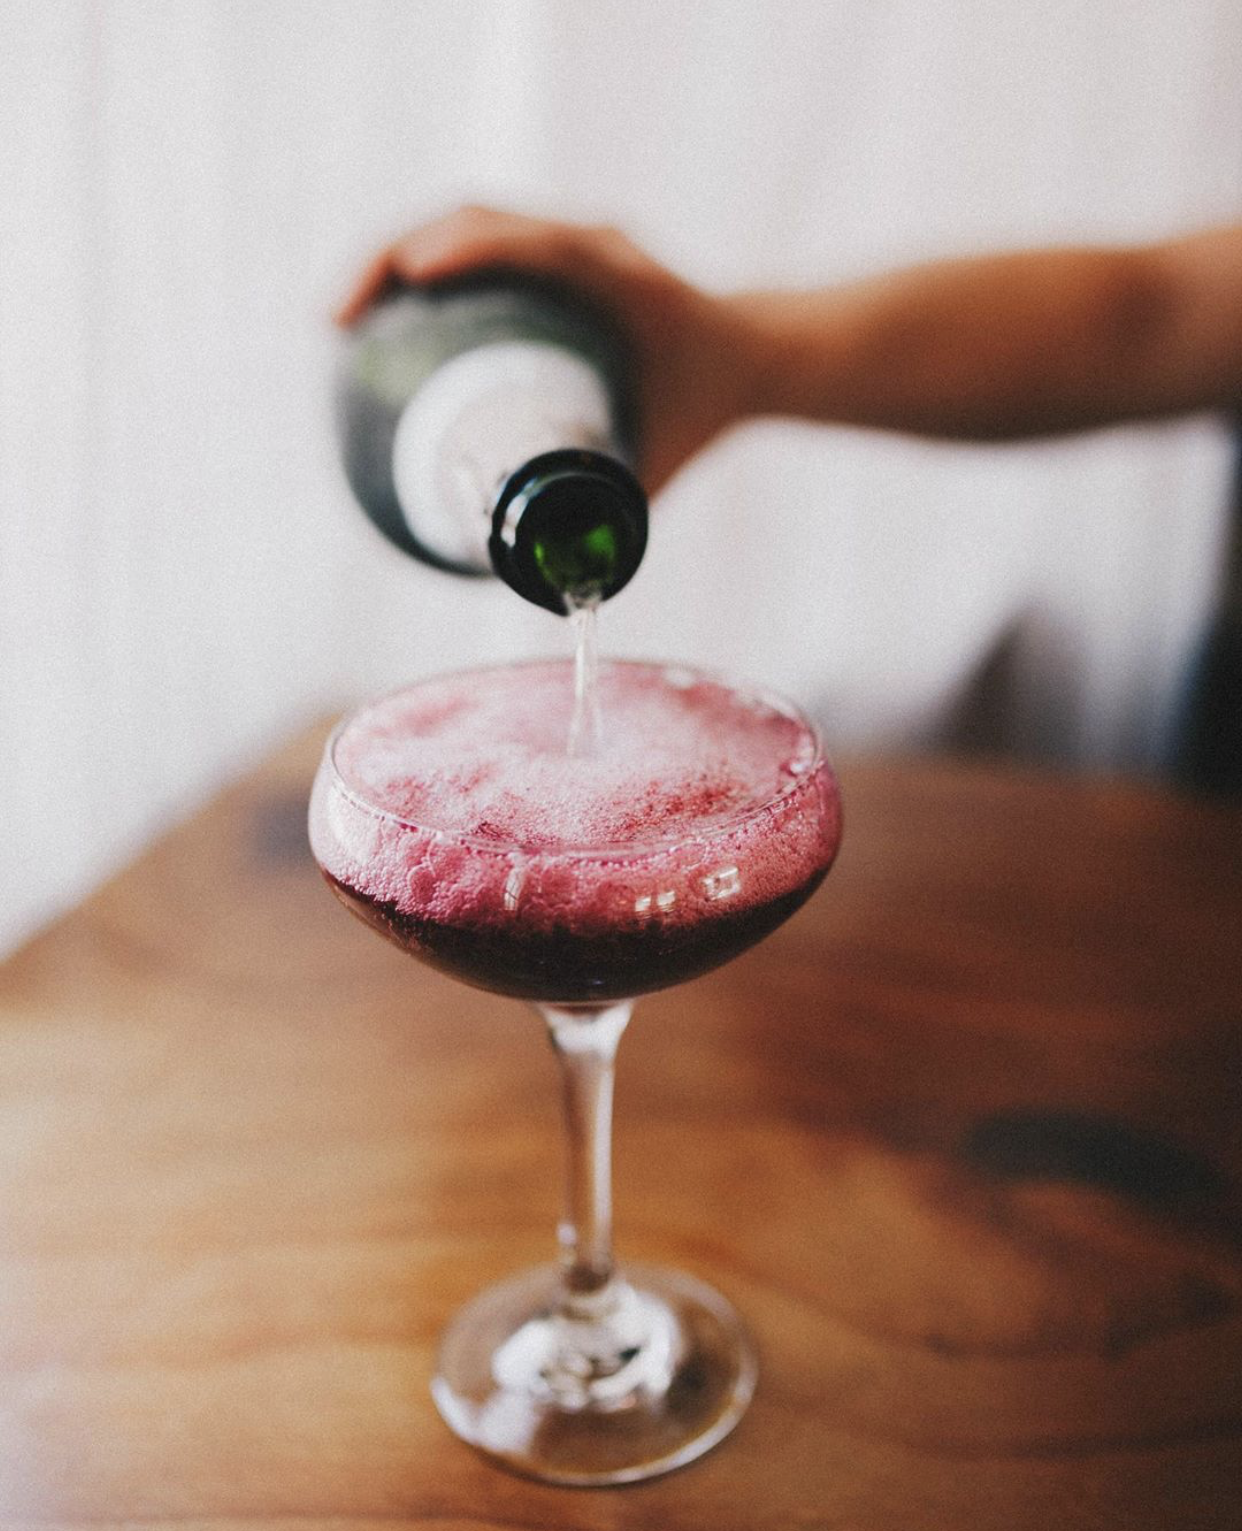 Blackberry Thyme - 1/2 oz Blackberry Syrup1/2 oz Elderflower LiquerMuddled ThymeMix that allll up!!Top with Prosecco